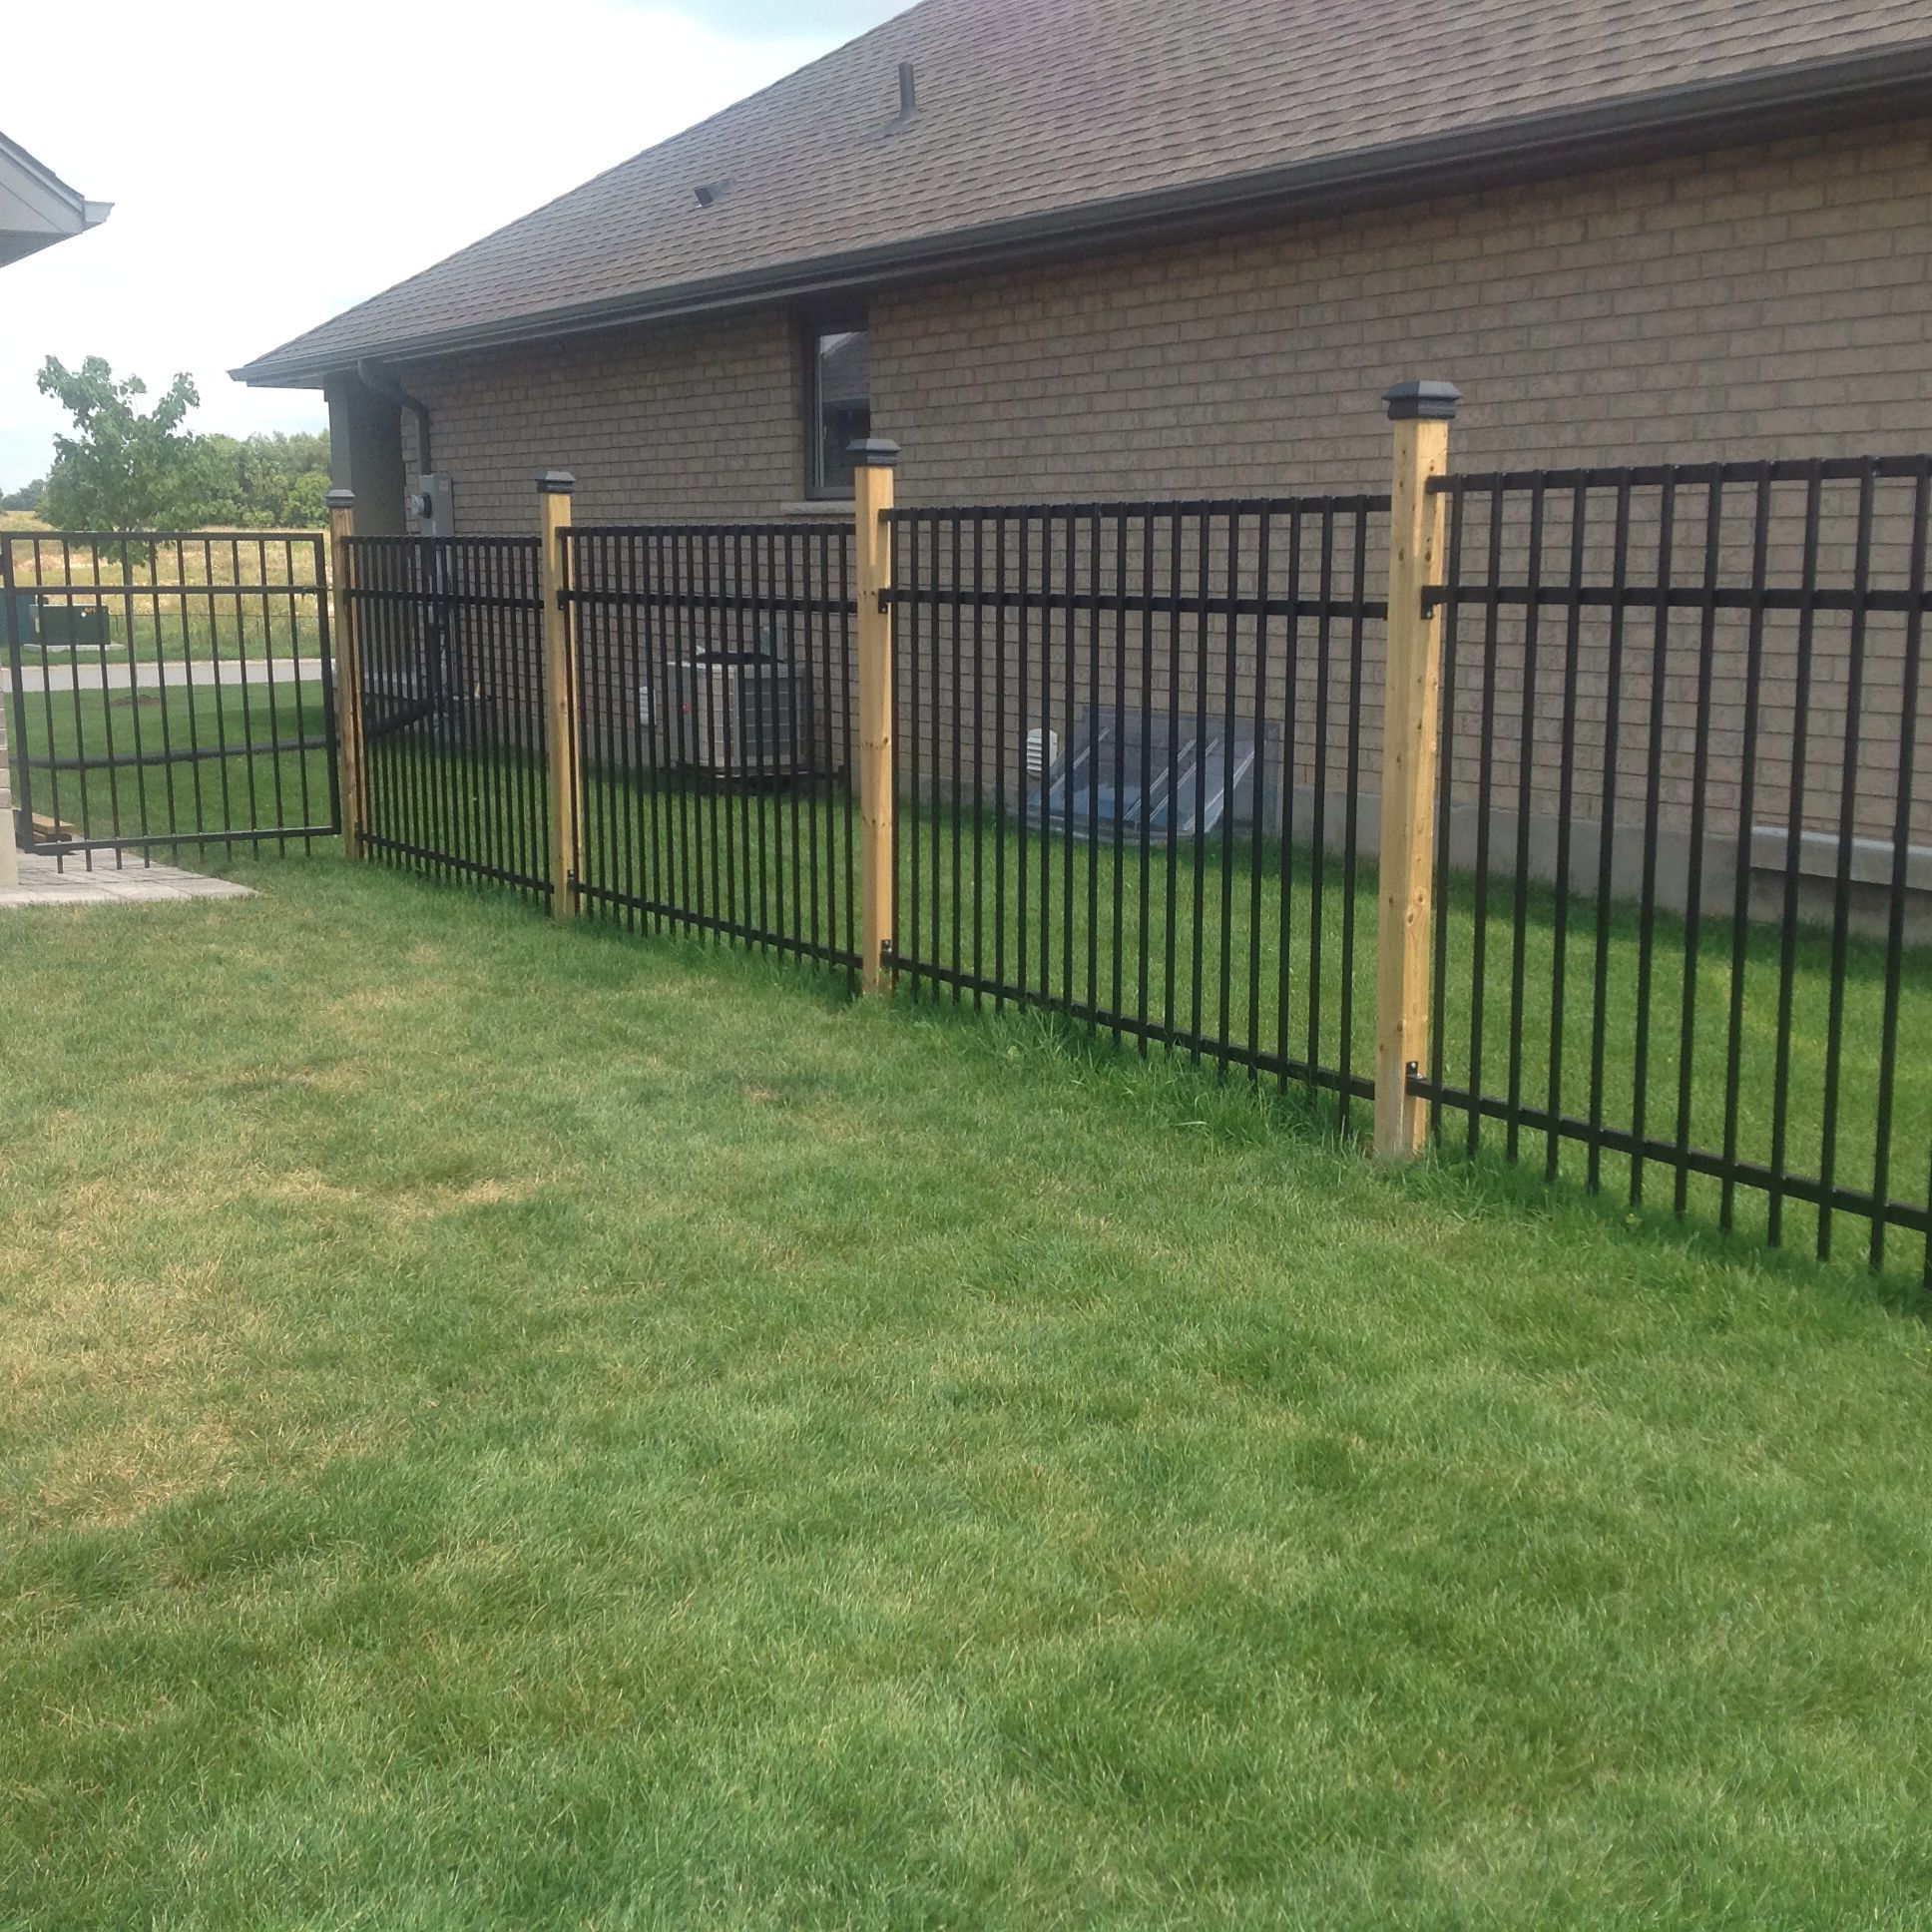 Steel Fence Iron Fence Backyard Fences Wood Fence